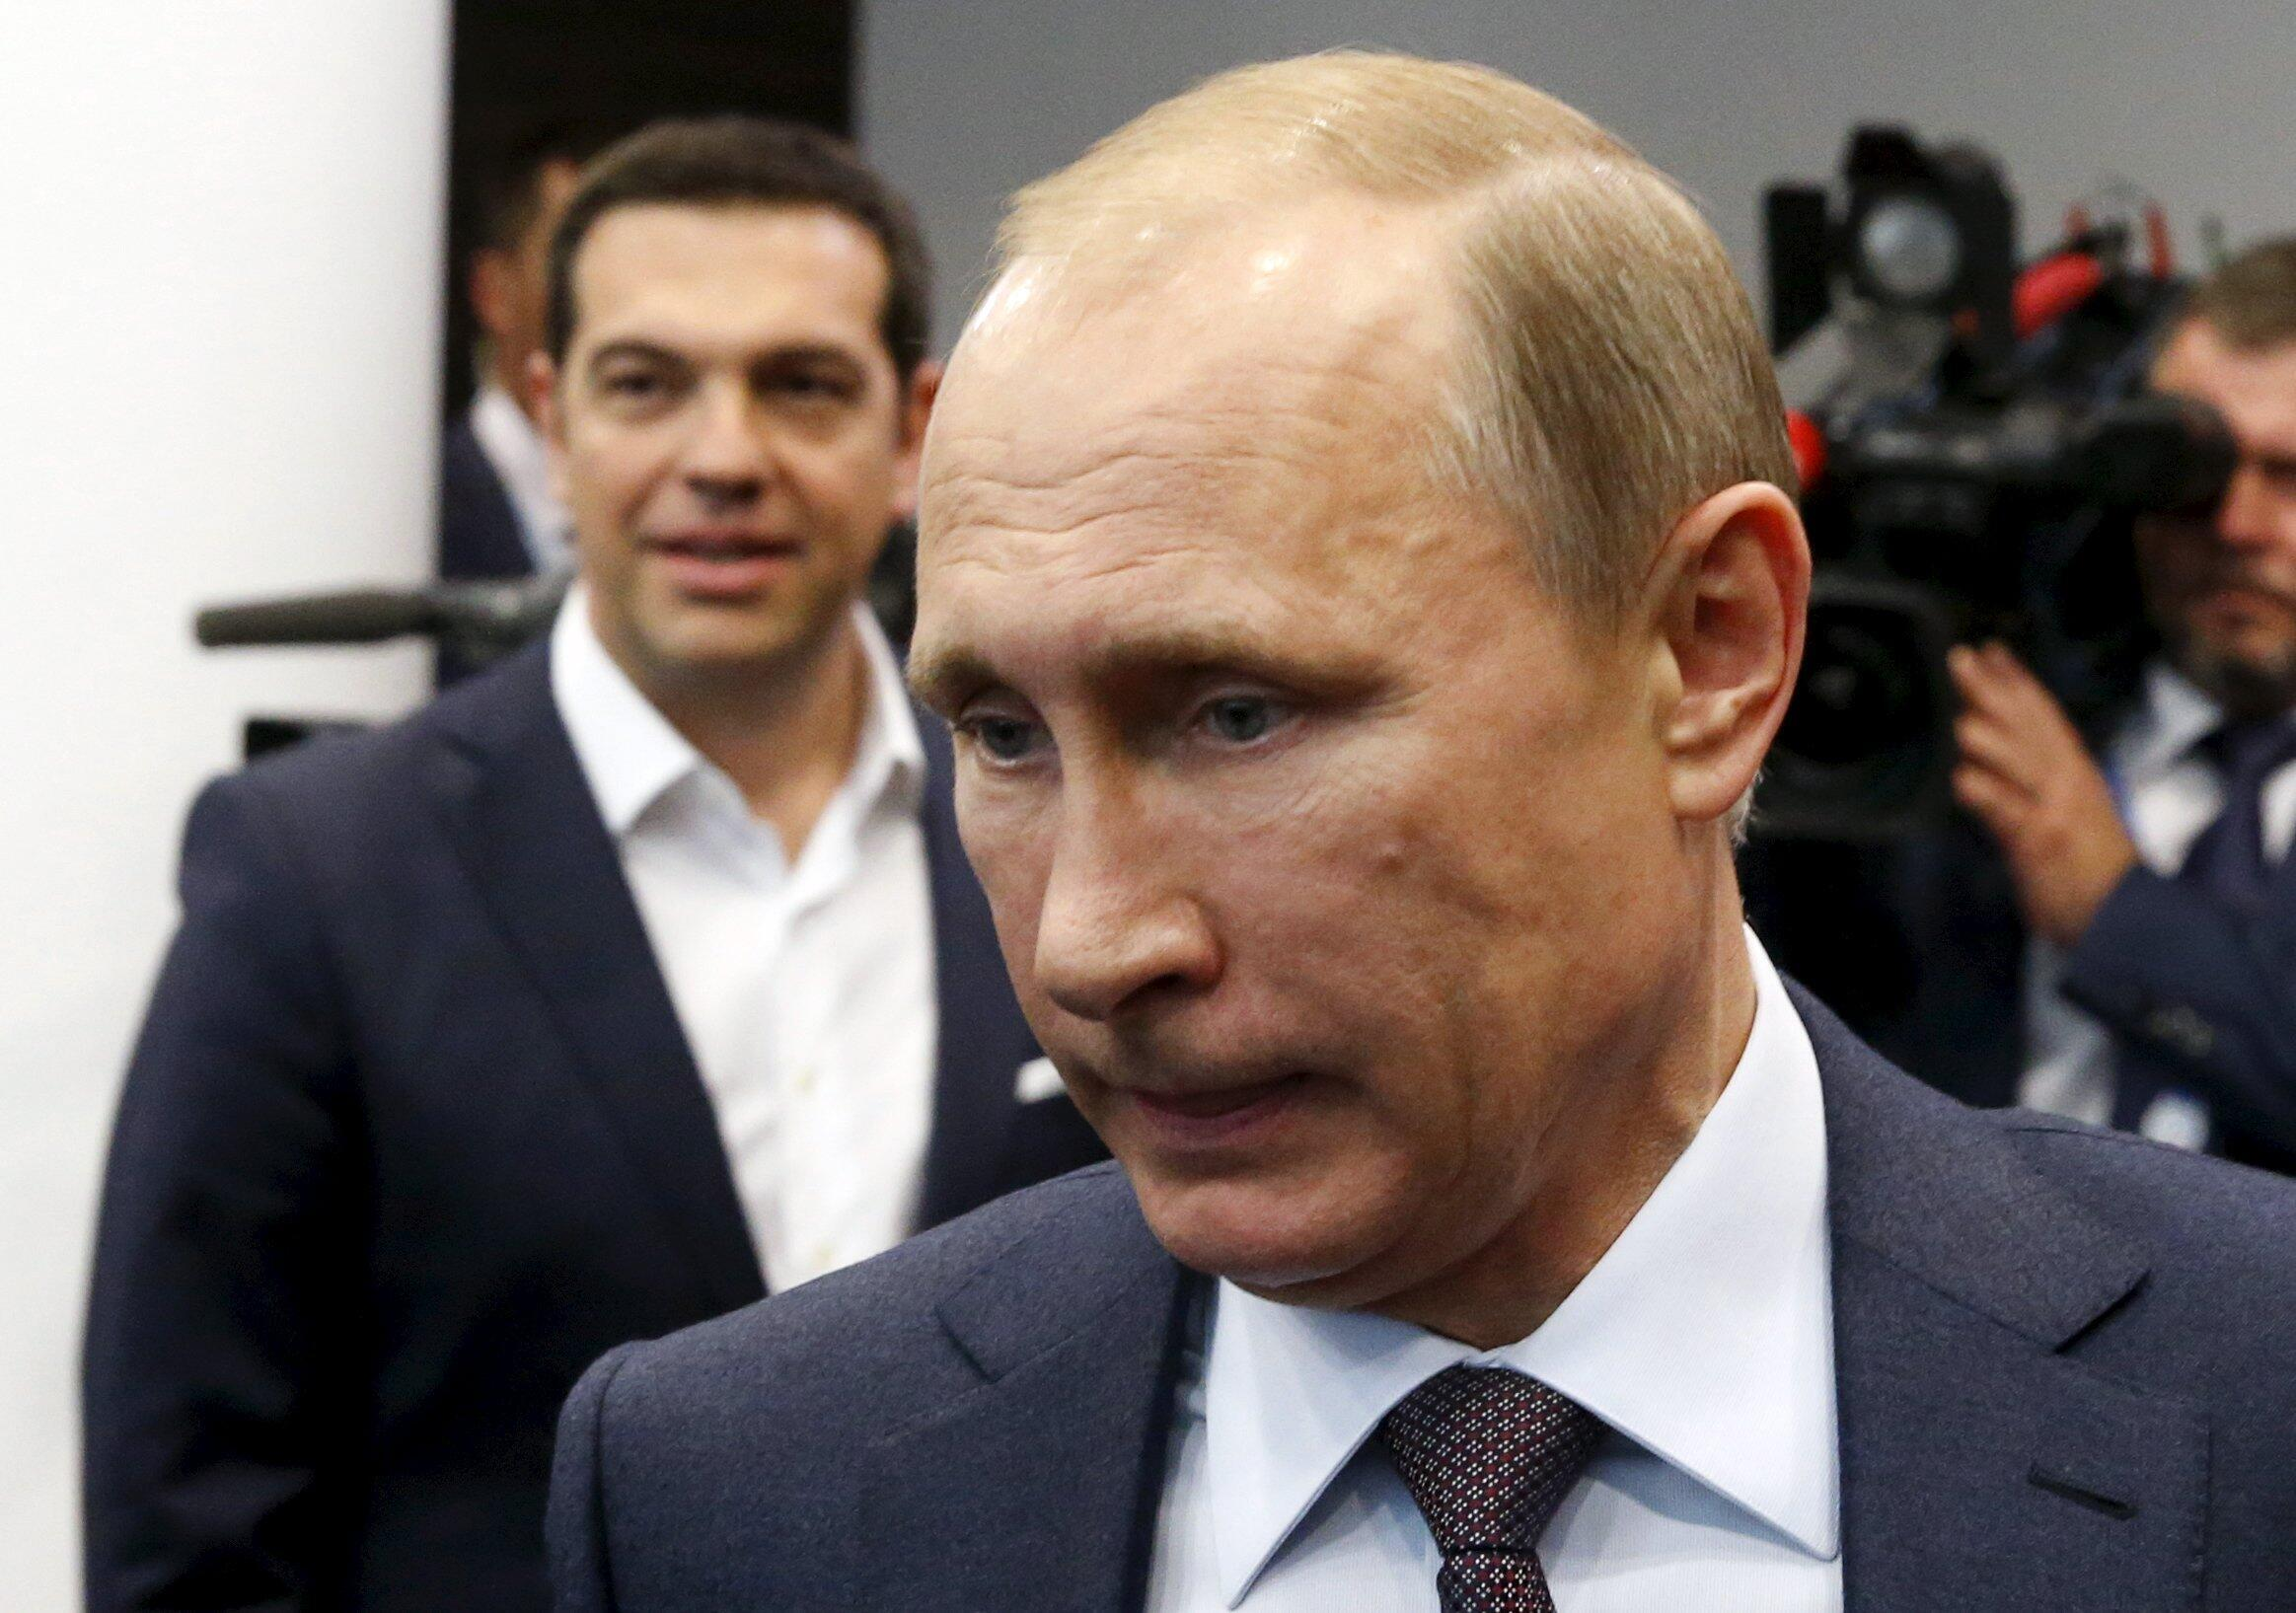 Russian President Vladimir Putin (front) and Greek Prime Minister Alexis Tsipras arrive for a meeting at the St. Petersburg International Economic Forum 2015 (SPIEF 2015) in St. Petersburg, Russia, June 19, 2015